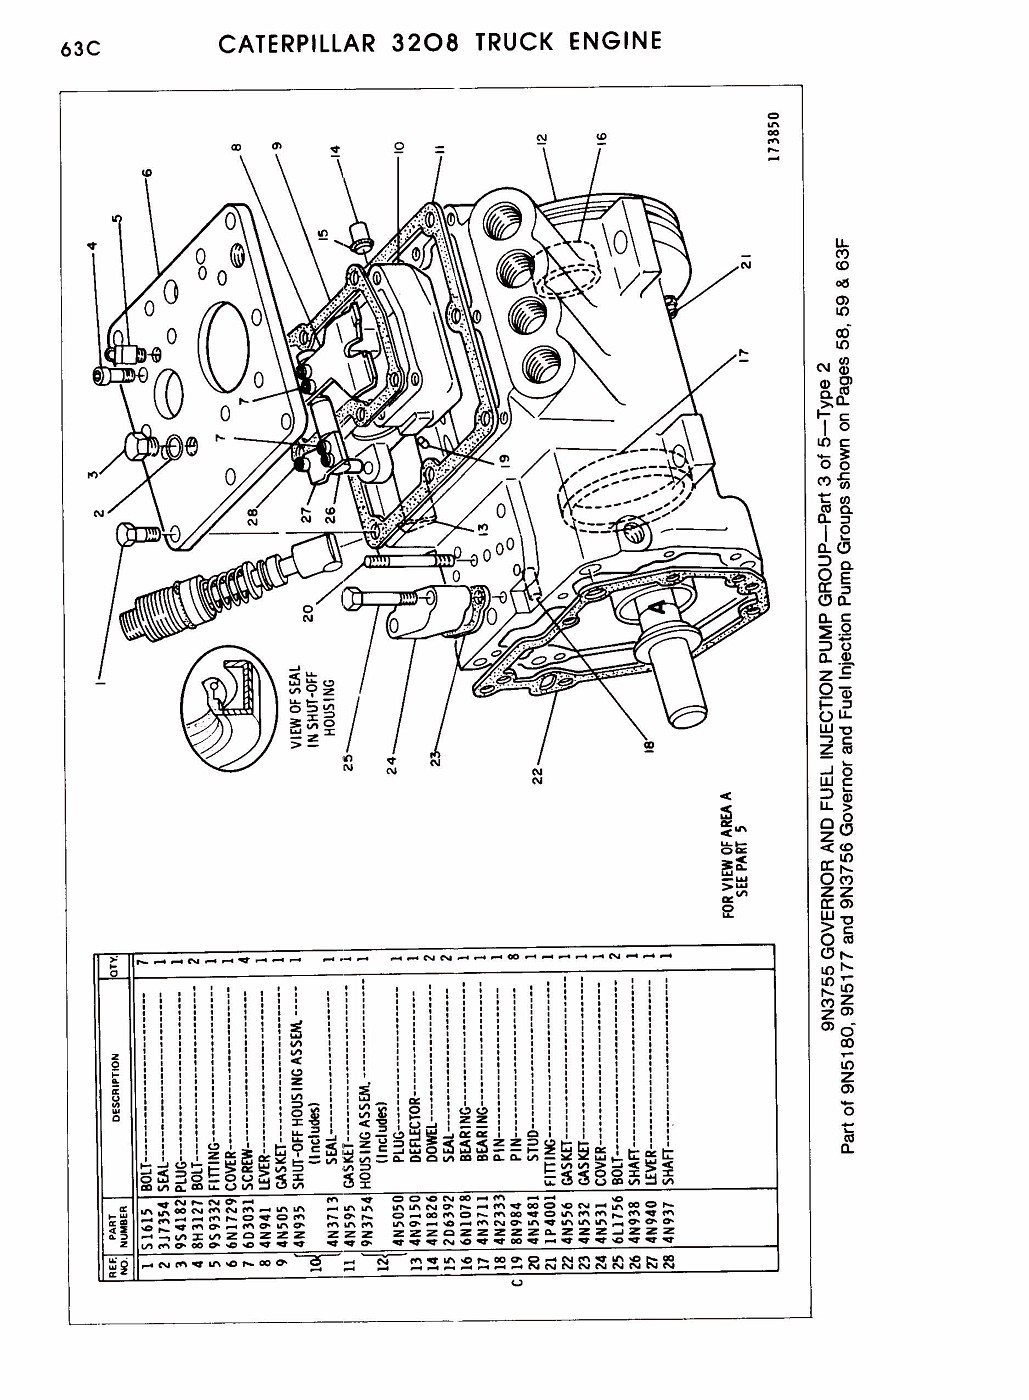 Caterpillar Parts Exploded Diagram